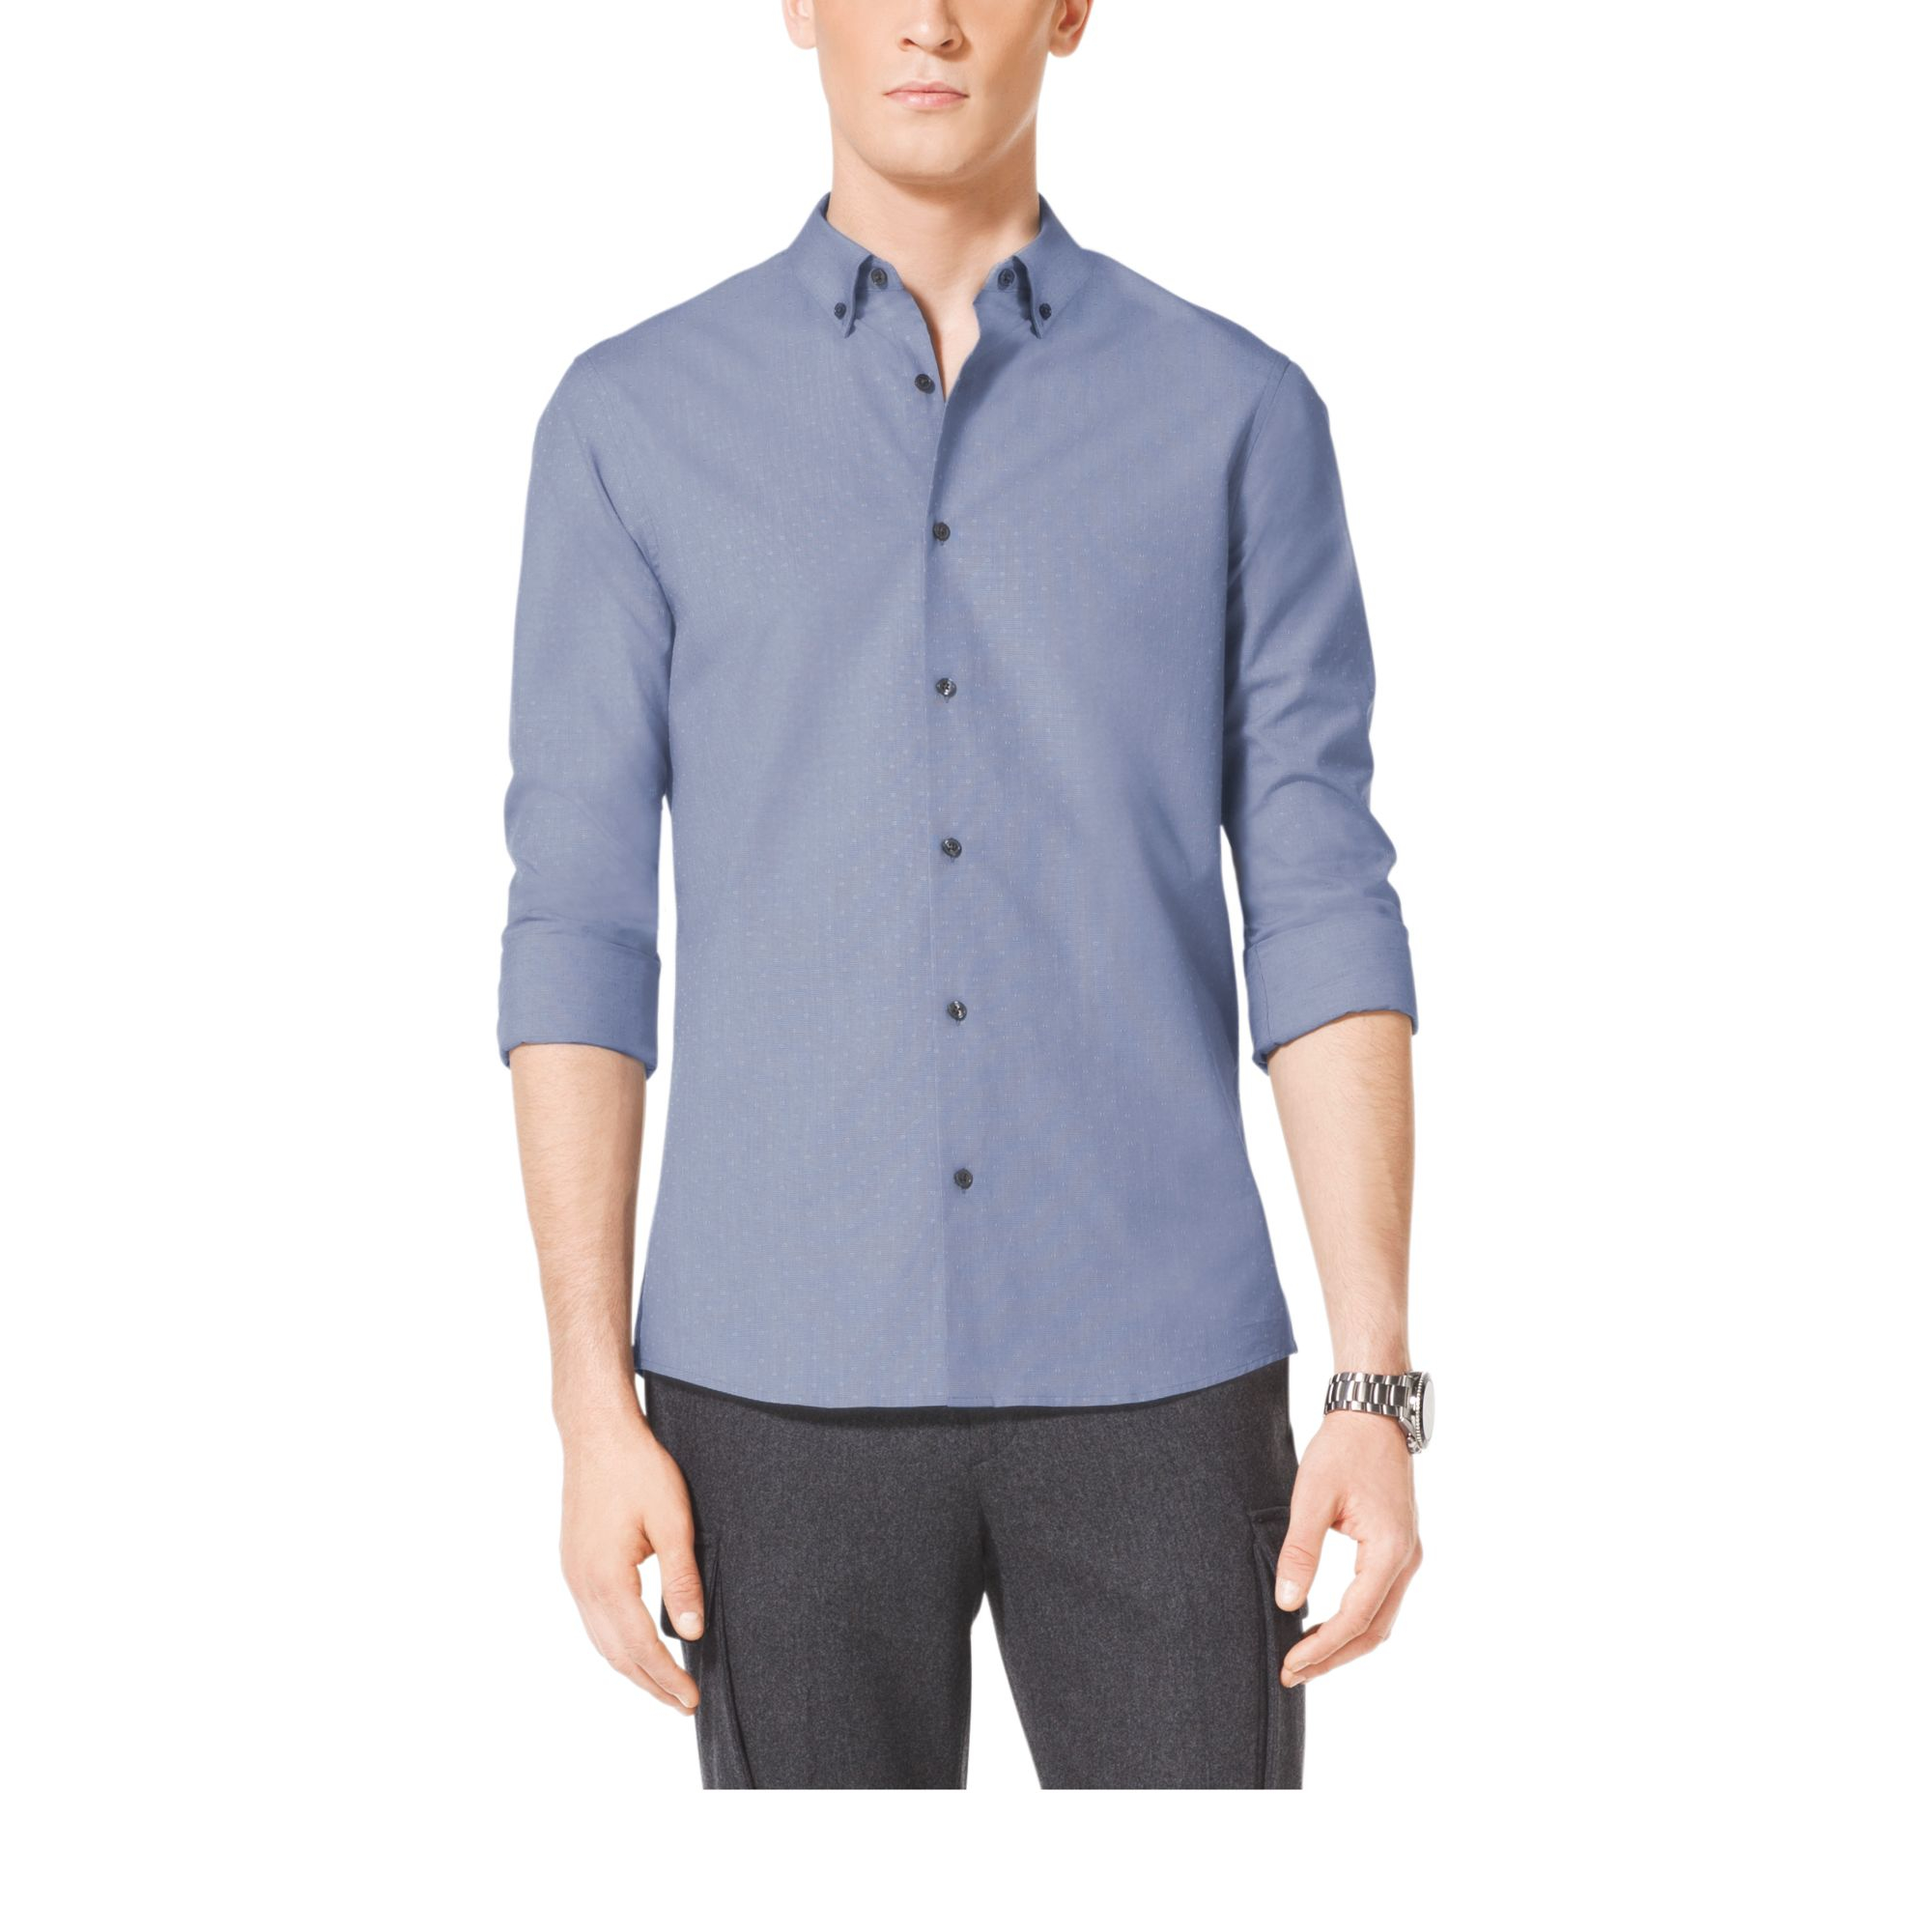 Michael kors slim fit cotton shirt in blue for men for Slim fit cotton shirts